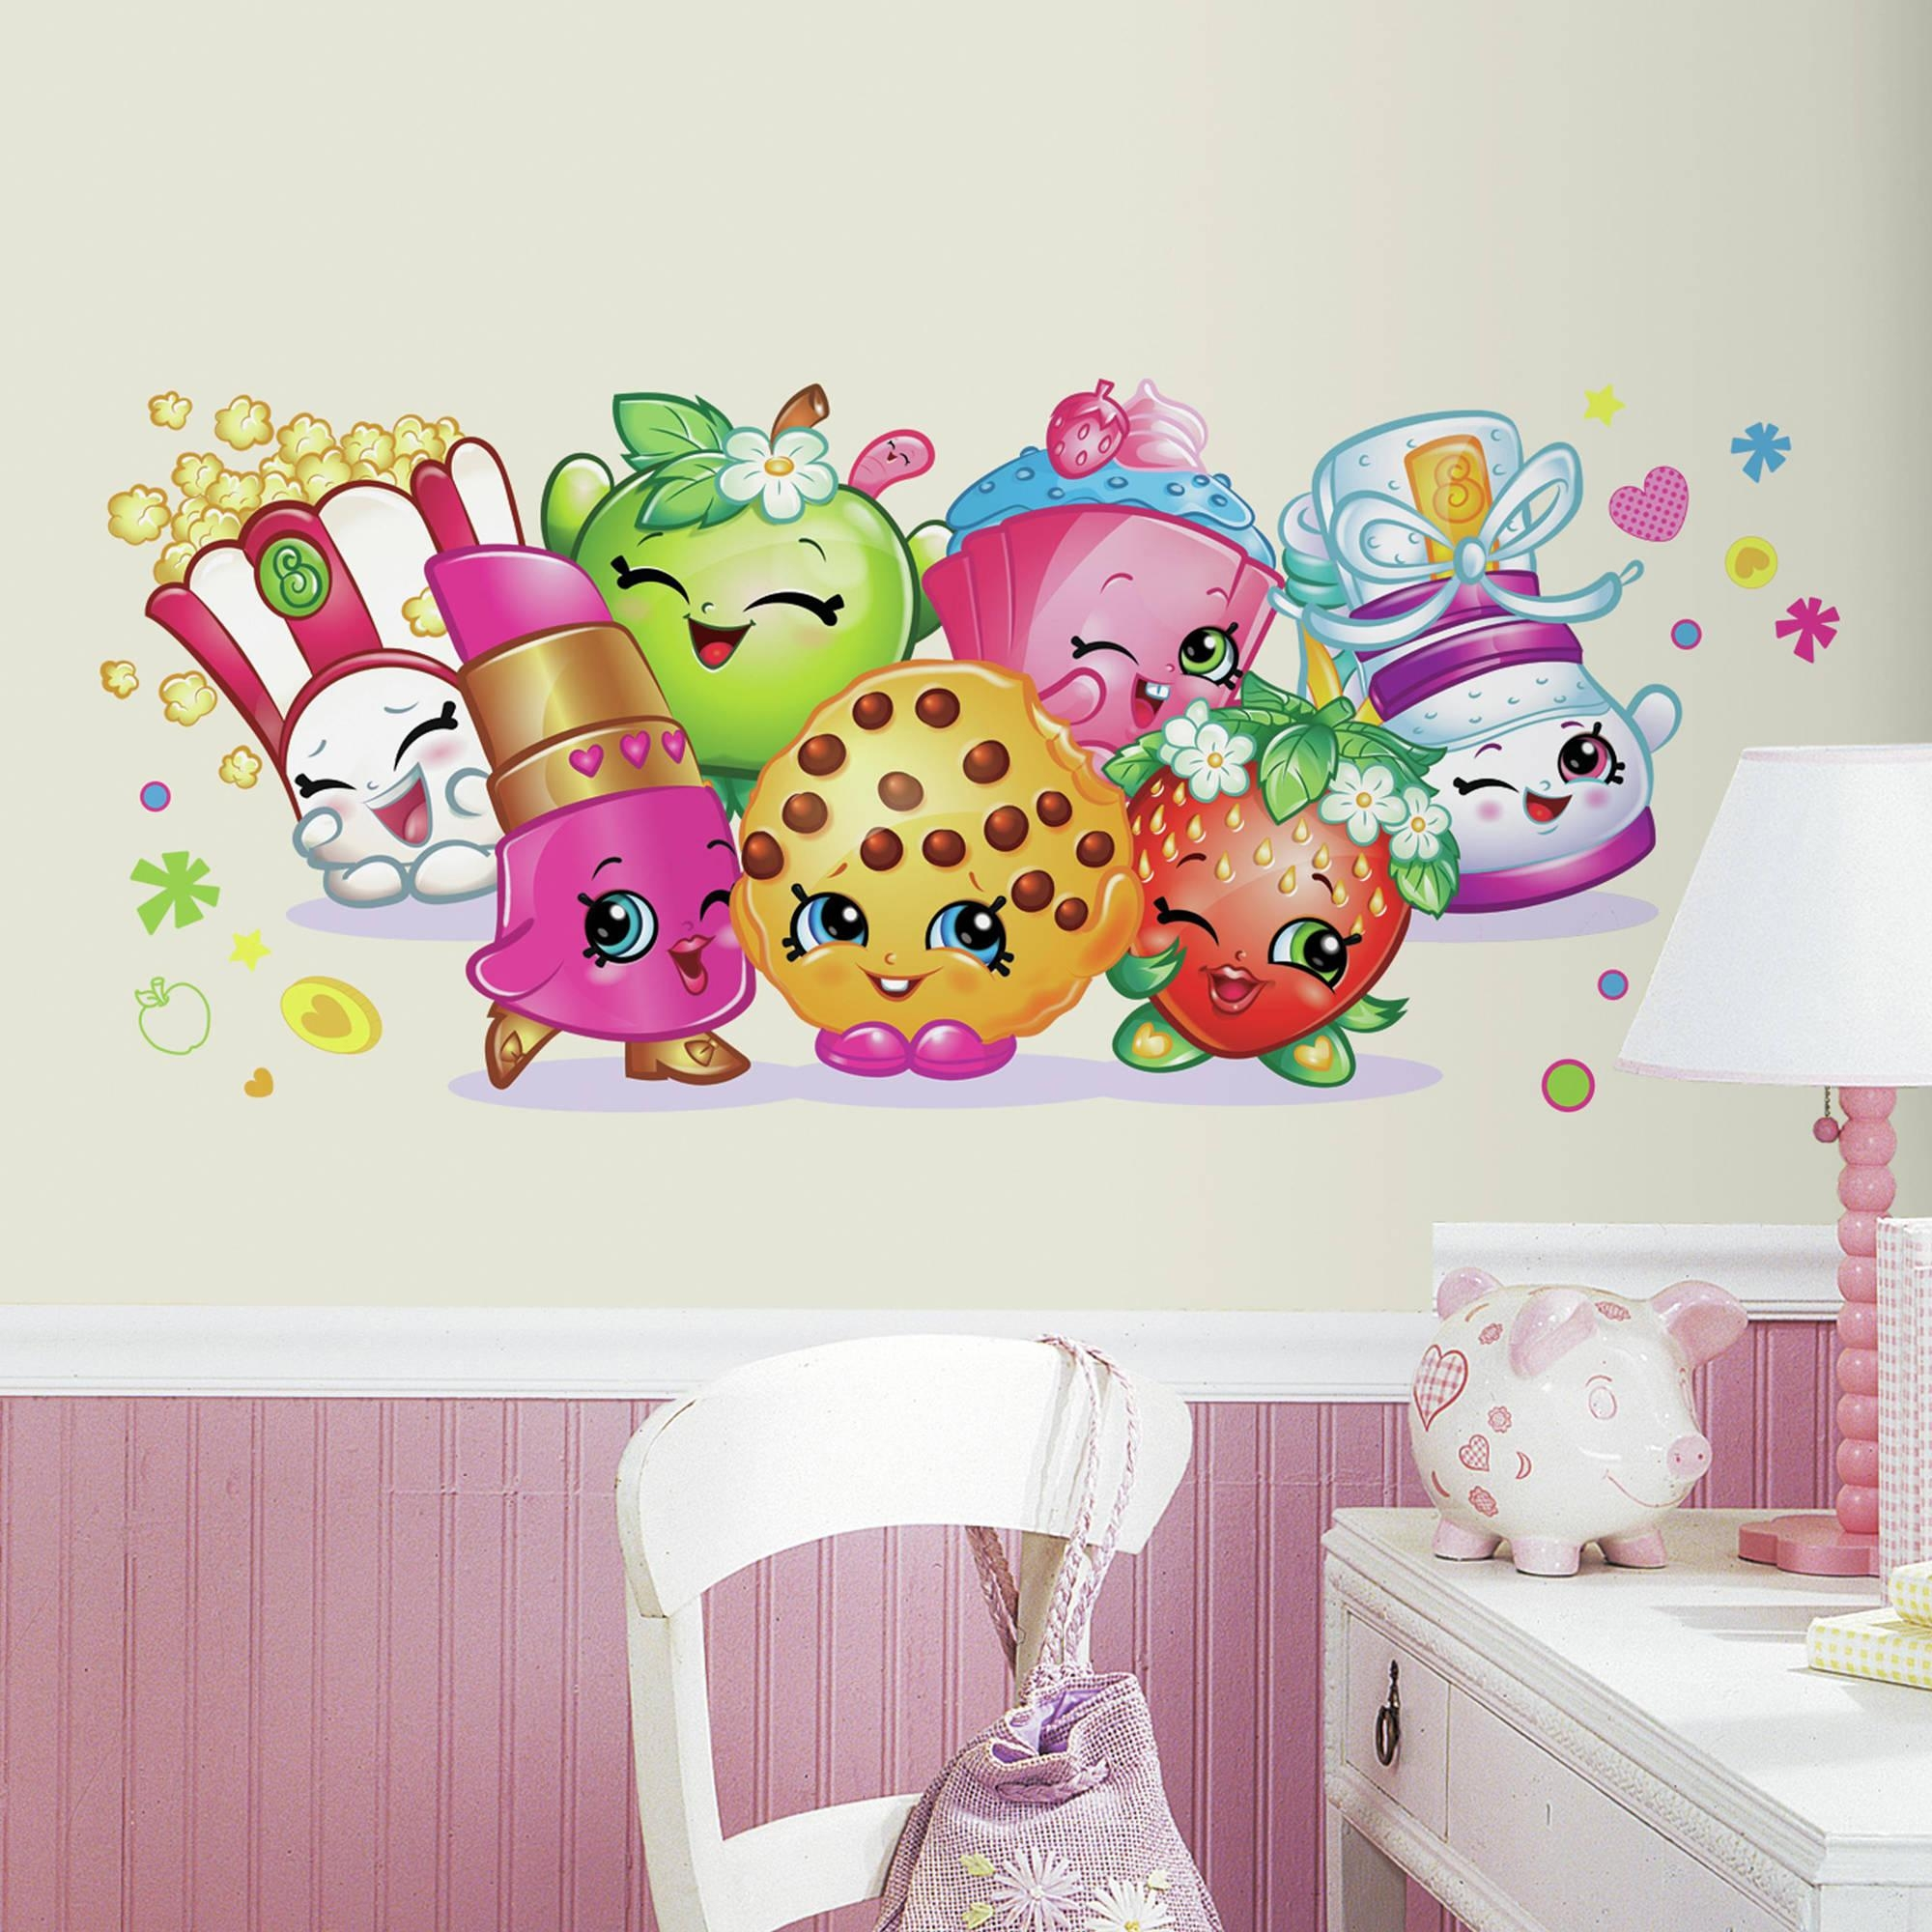 Roommates Shopkins Burst Peel And Stick Giant Wall Decals Inside Walmart Wall Stickers (View 10 of 20)